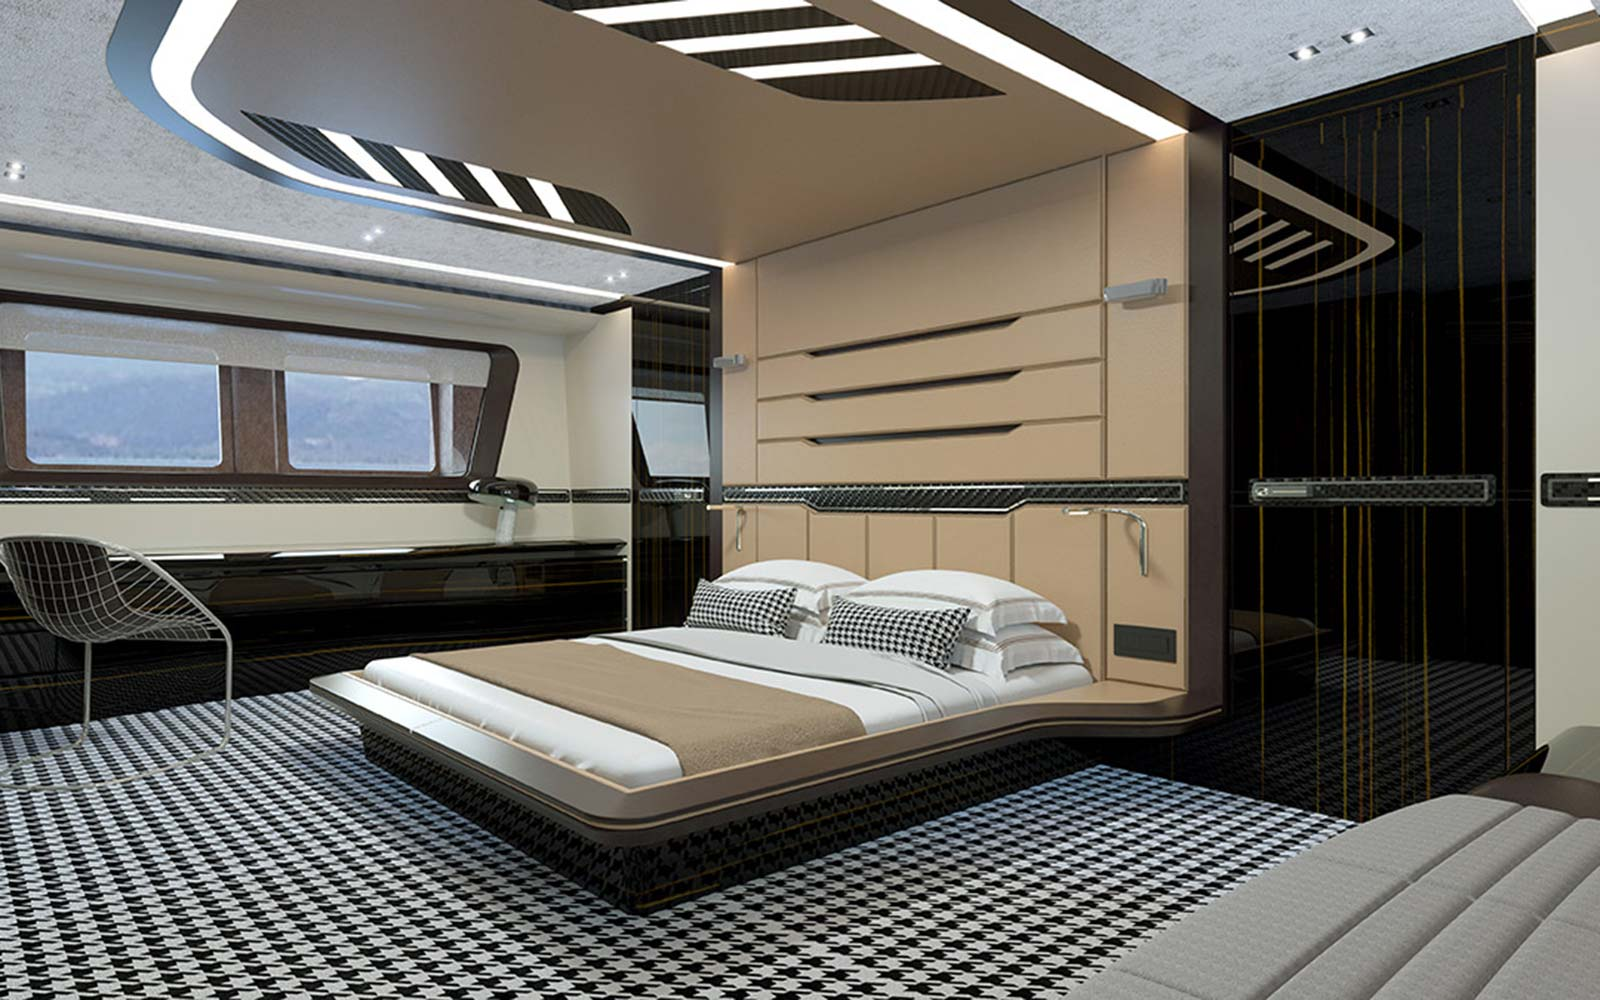 Dynamiq Custom Luxury Porsche Yachts Bedroom